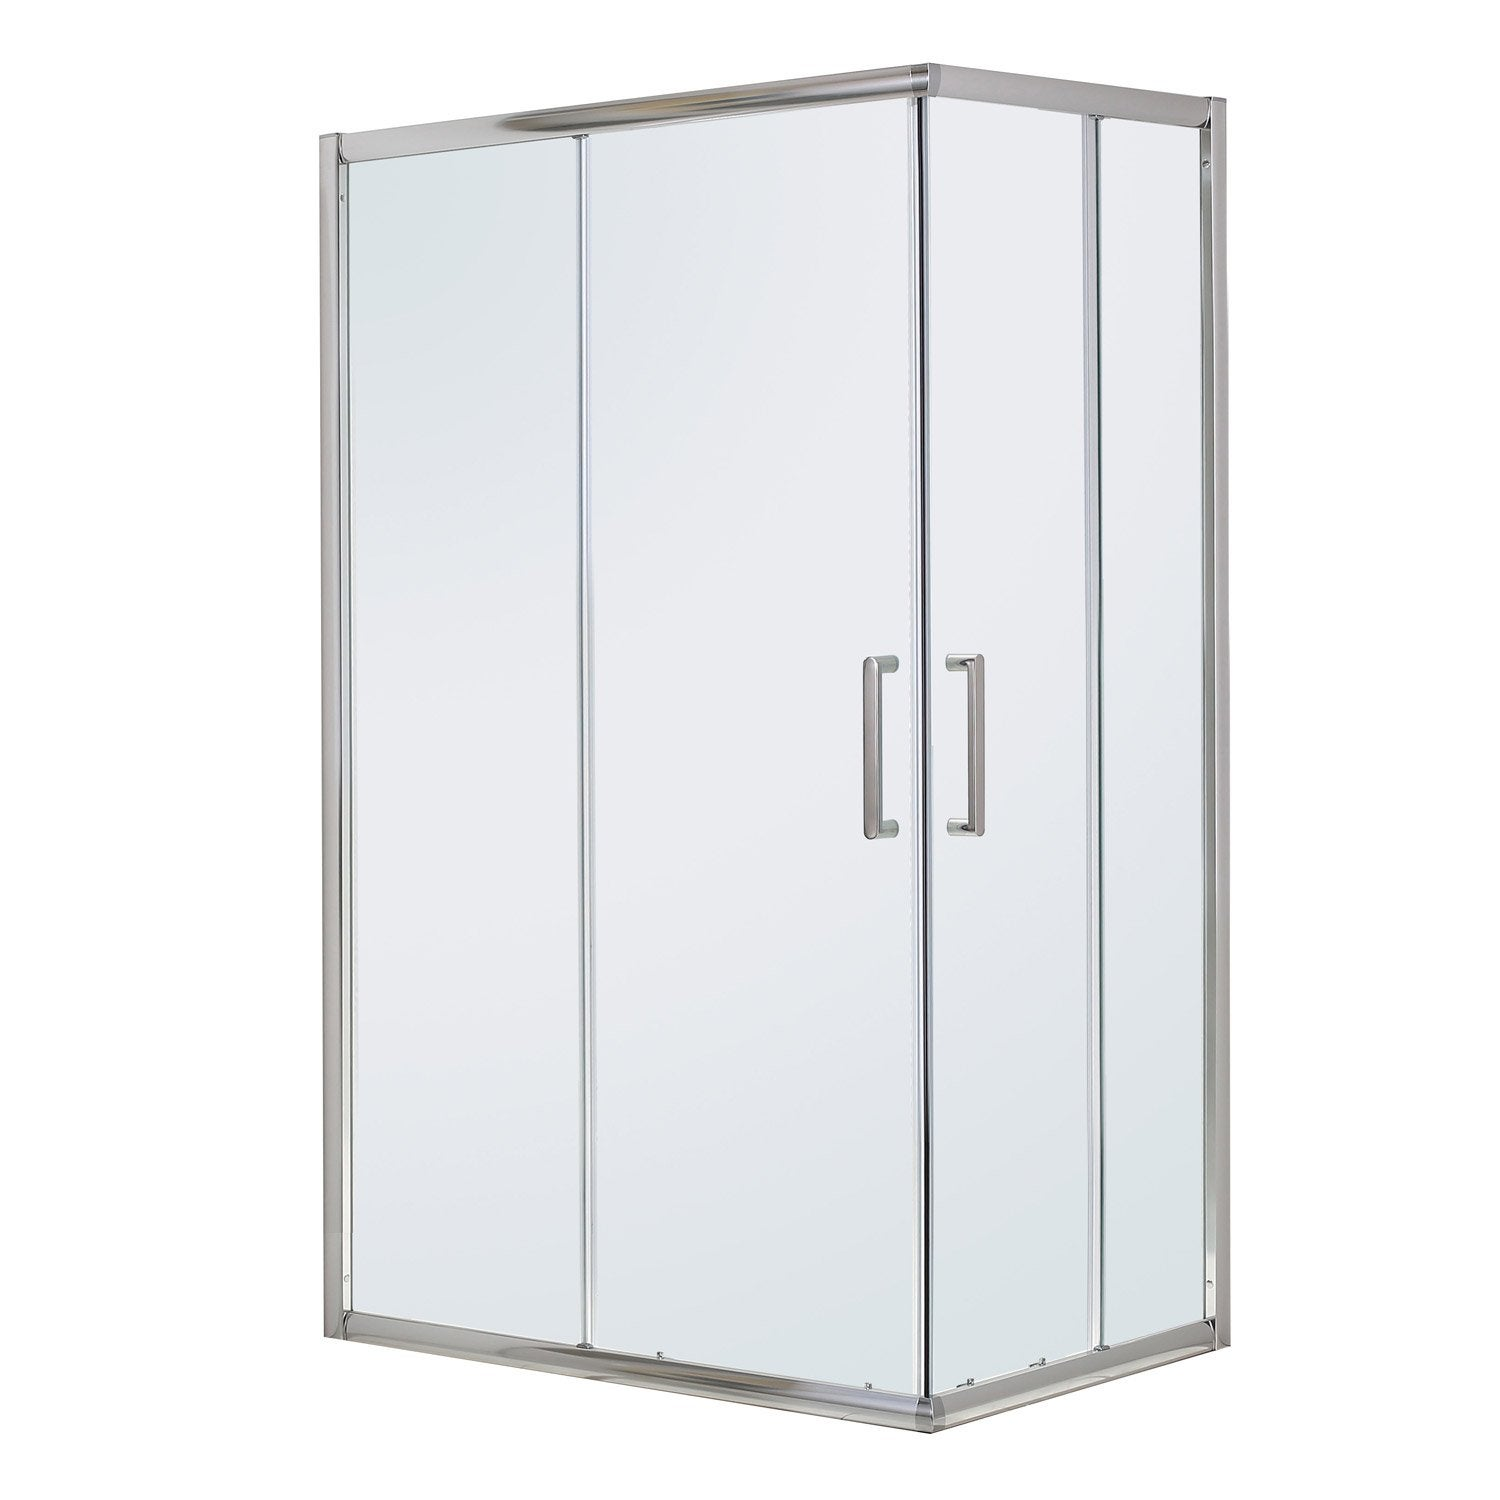 Porte De Douche Angle Rectangle L Cm X L Cm Transparent - Porte douche angle